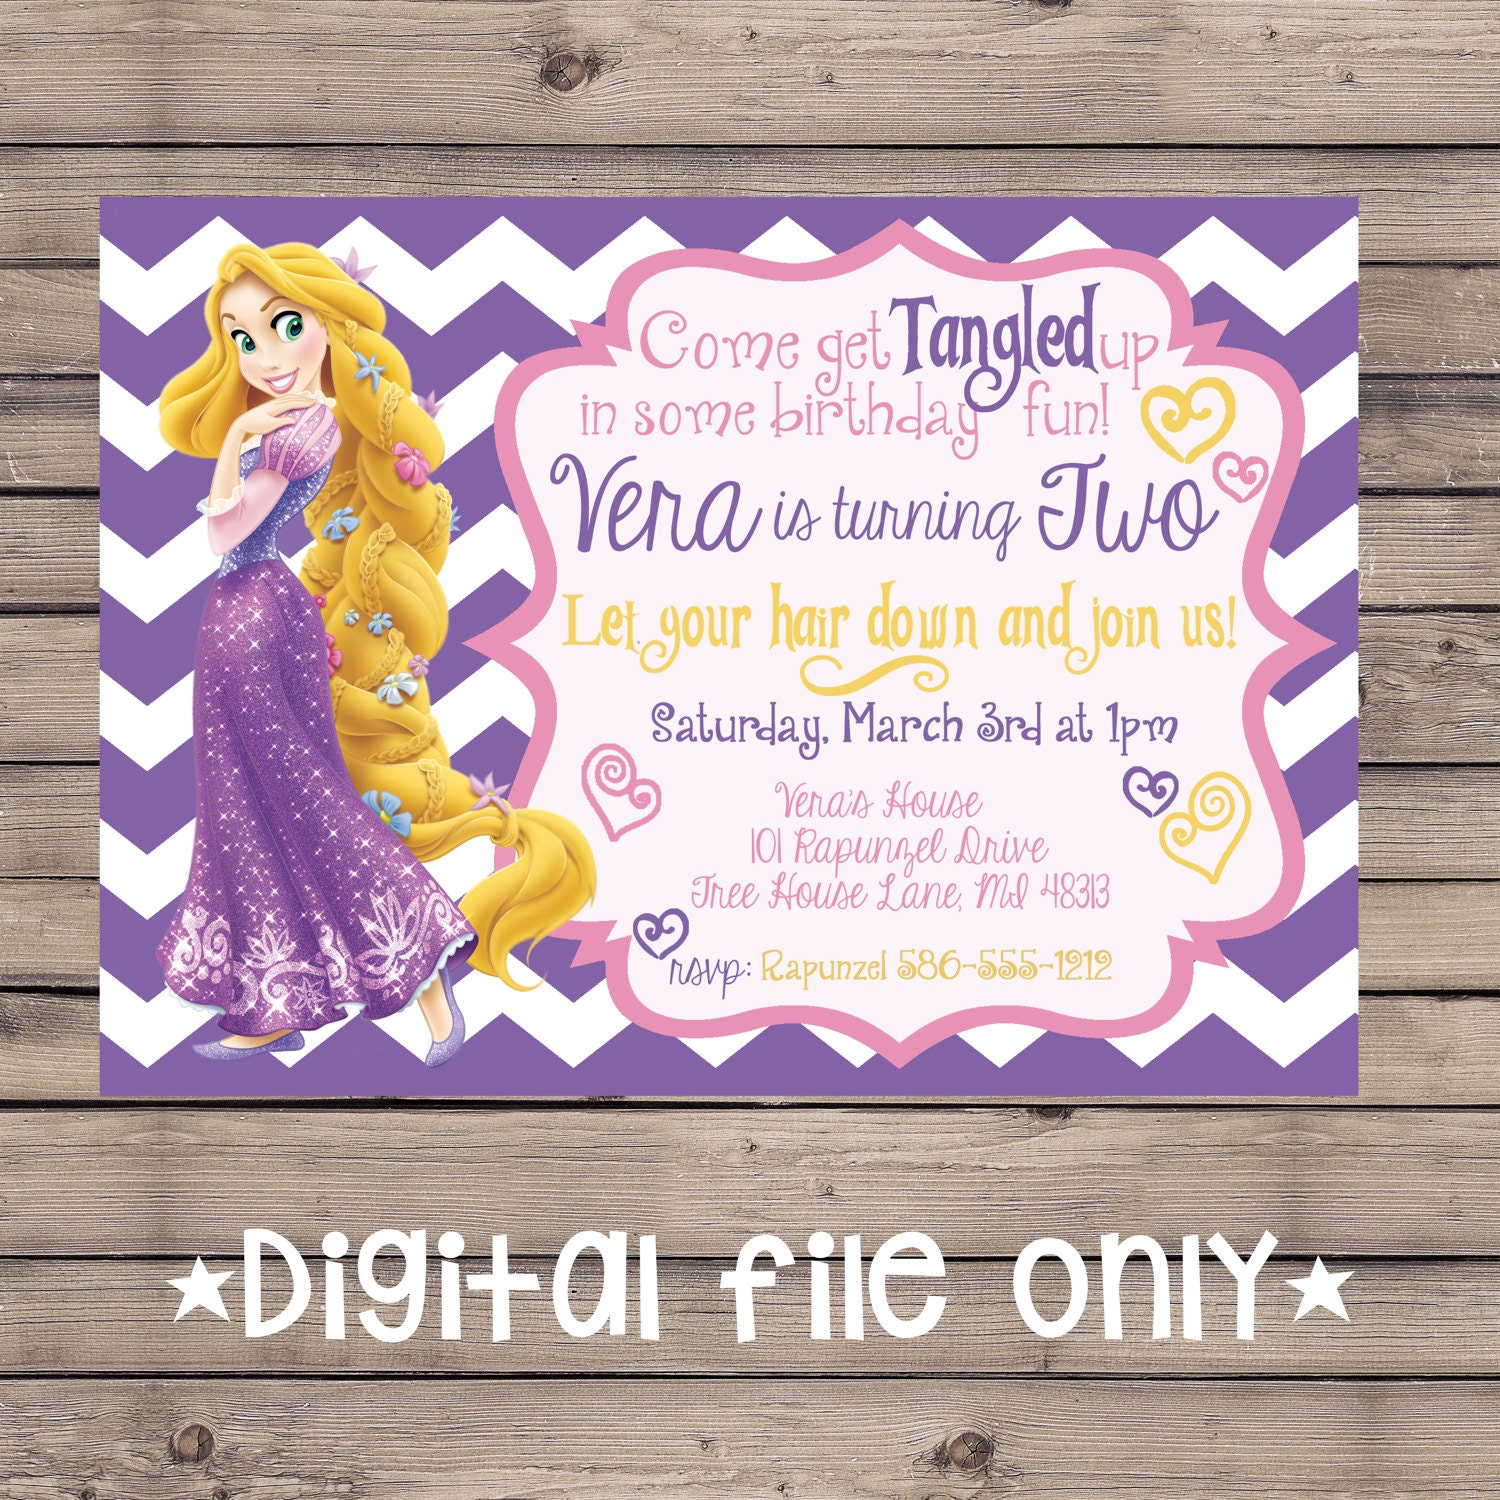 Tangled birthday invitation rapunzel birthday invitation tangled tangled birthday invitation rapunzel birthday invitation tangled rapunzel birthday invitation rapunzel birthday invite printable filmwisefo